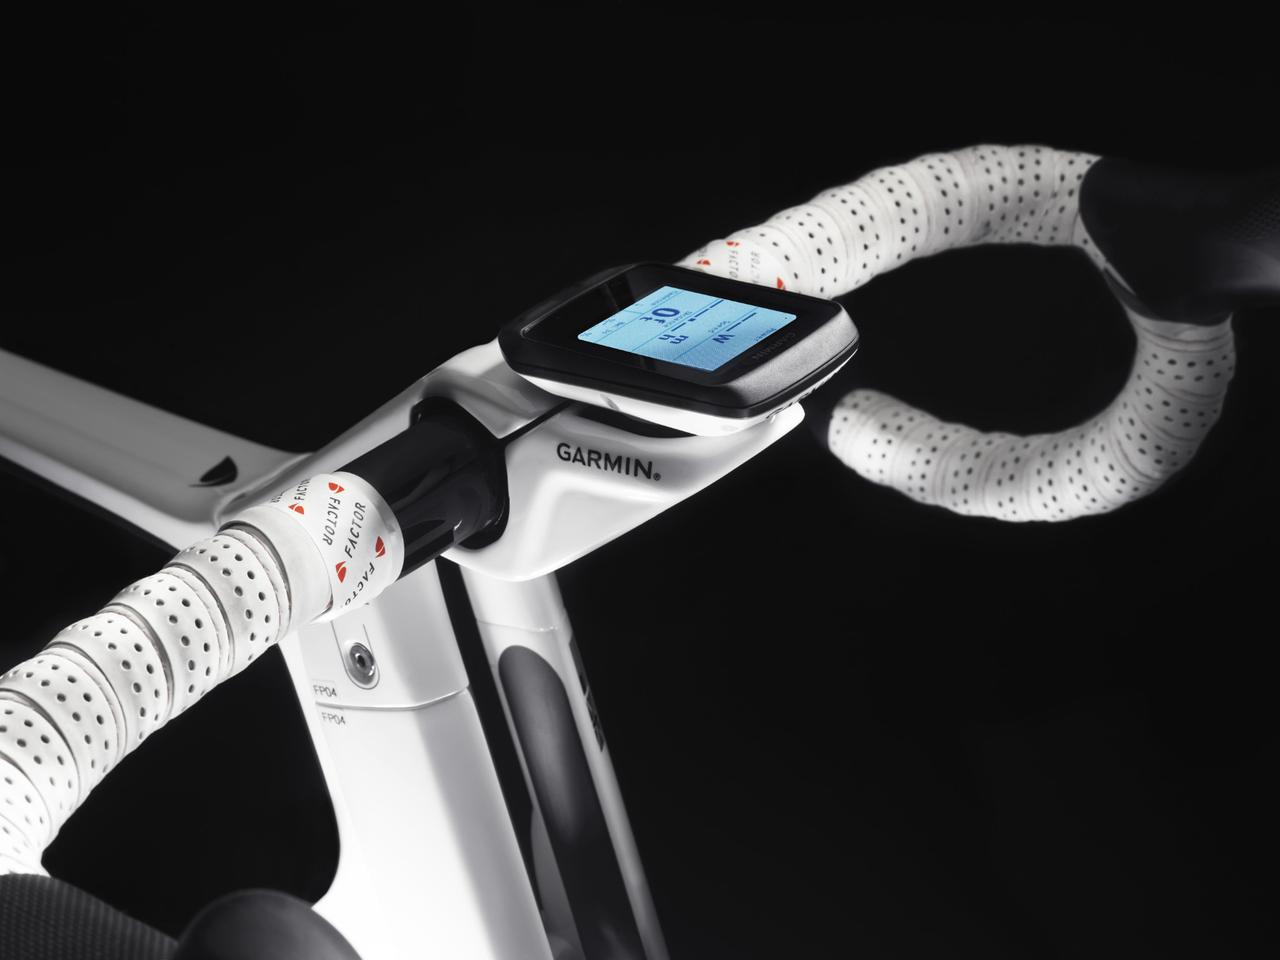 A Garmin Edge computer is mounted at the center of the Vis Vires' handlebars